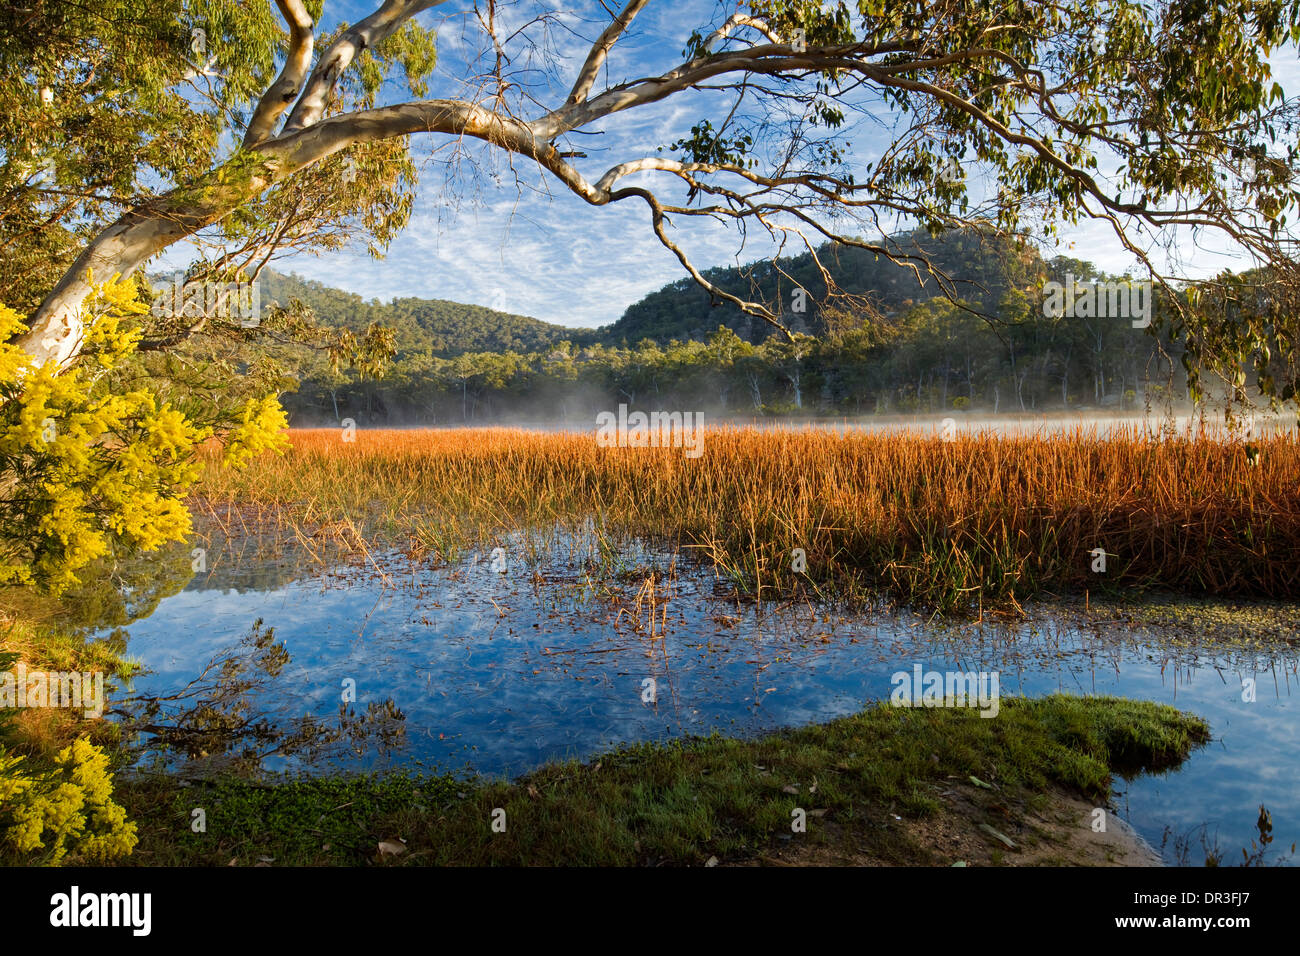 Spectacular landscape, mist over blue lake, wetlands edged with wildflowers at Dunn's Swamp  Wollemi National Park NSW Australia - Stock Image